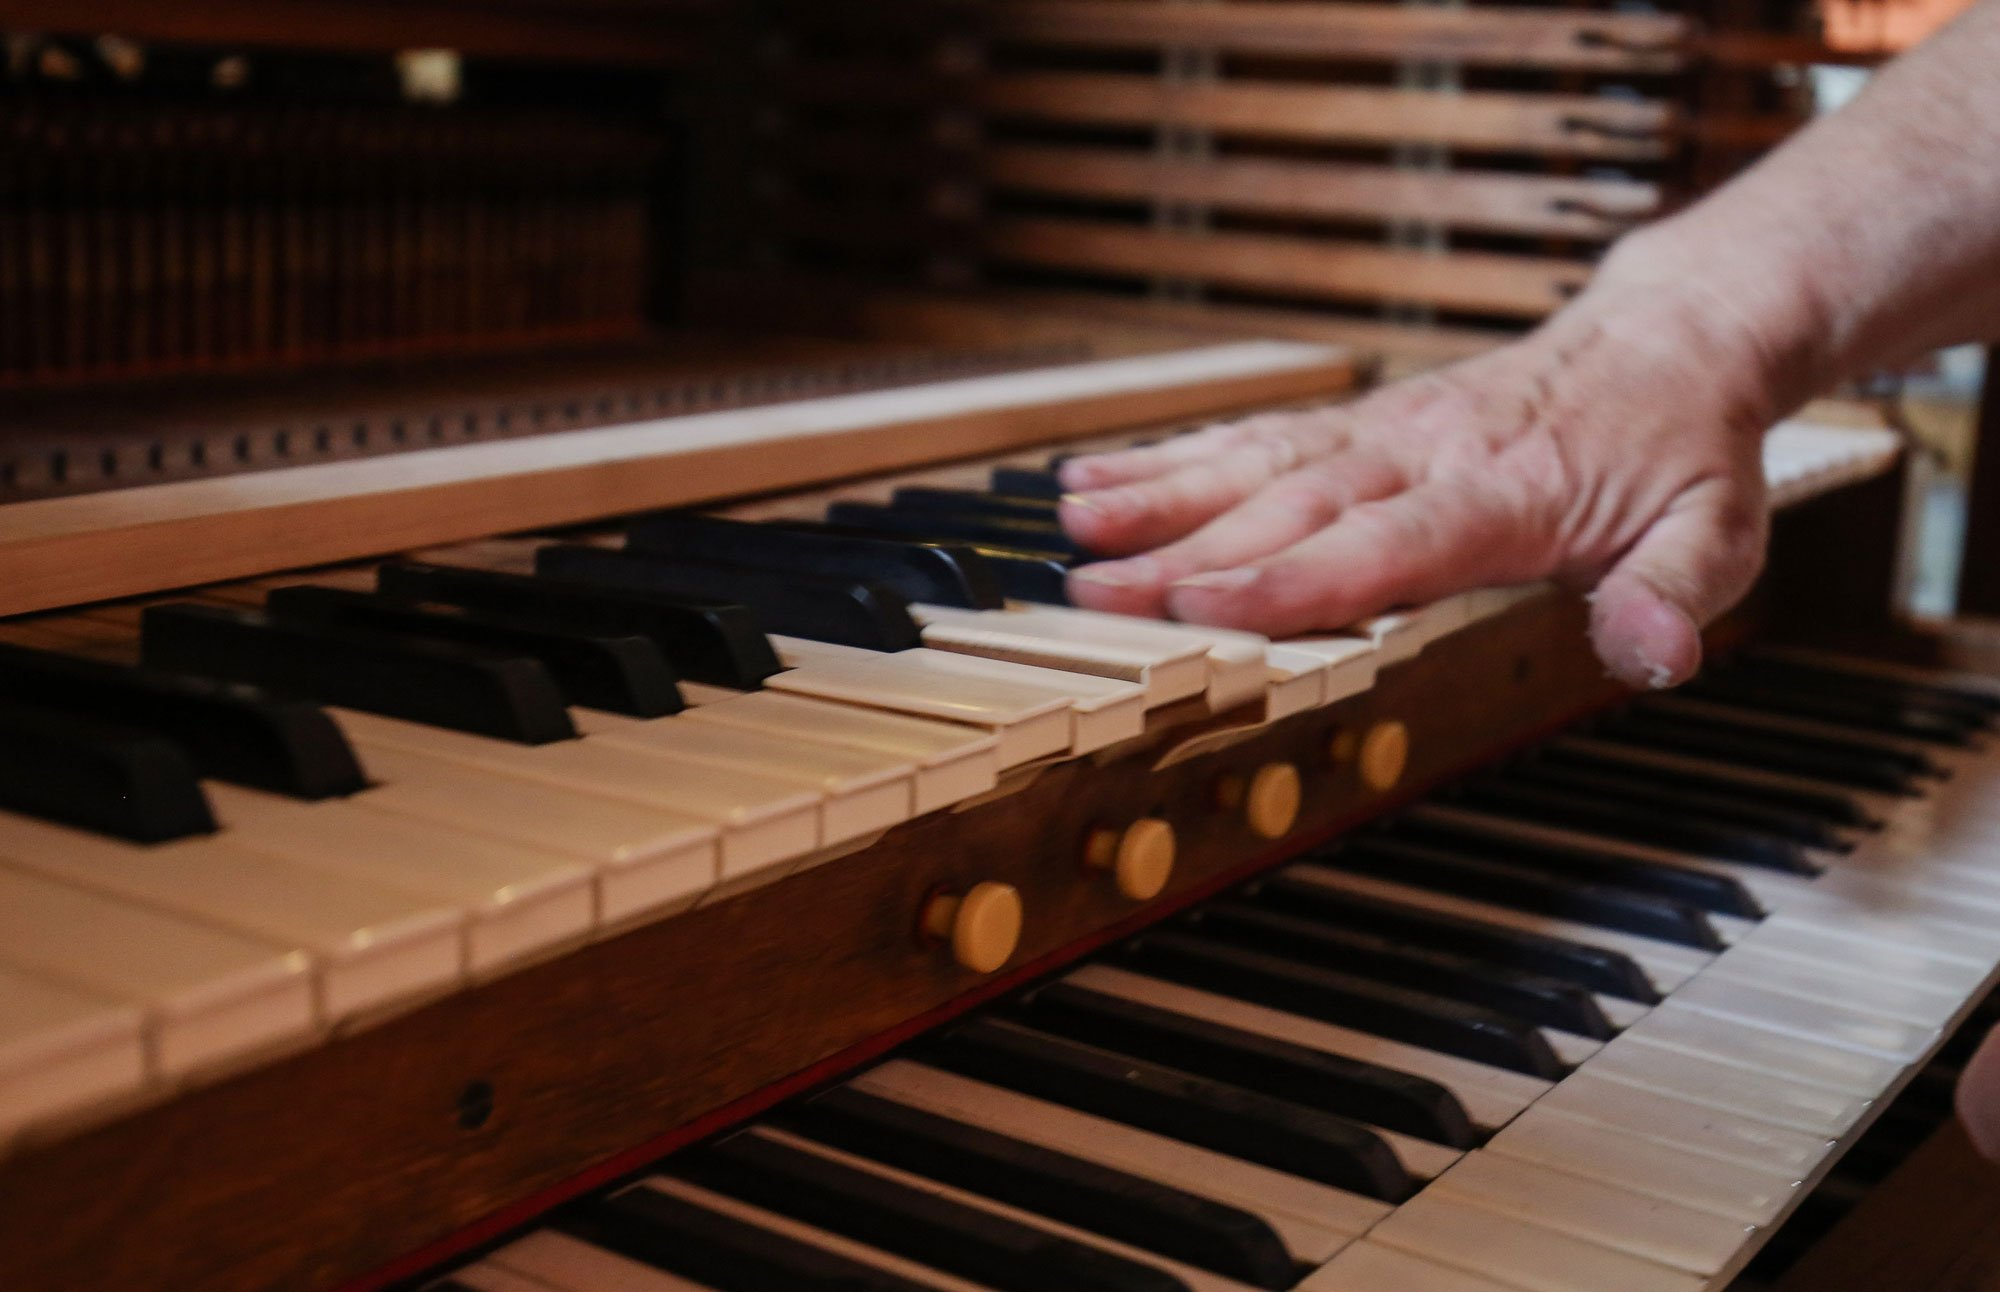 Restorers' Hands On Organ Keyboard